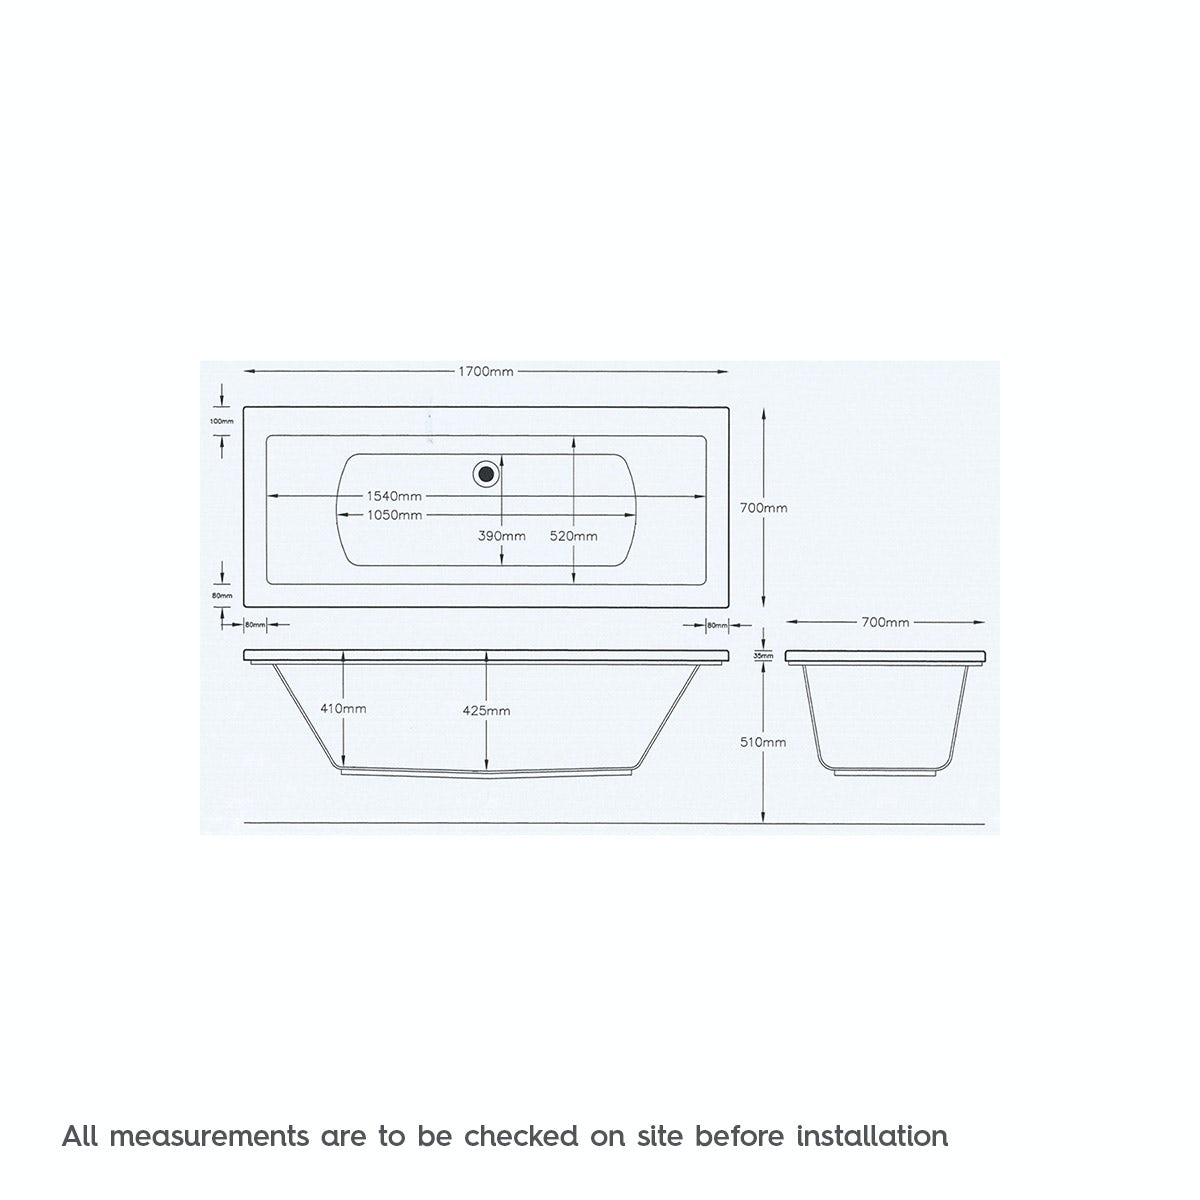 Dimensions for Orchard square edge double ended reinforced bath 1700 x 700